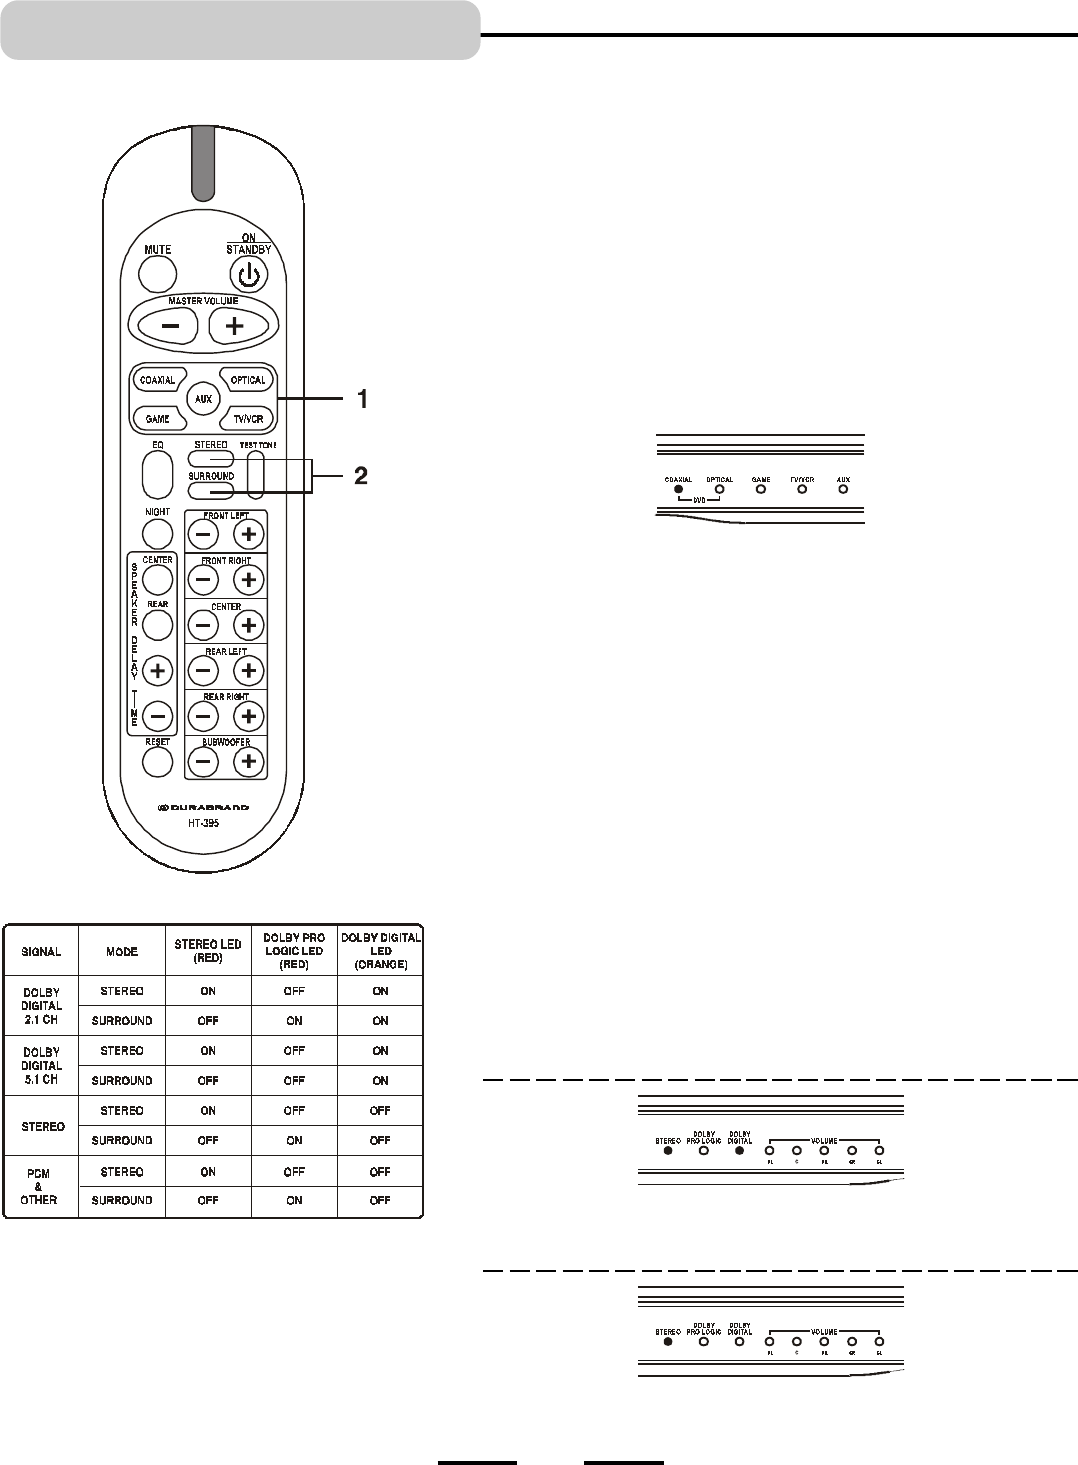 Page 24 of Lenoxx Electronics Home Theater System HT-395